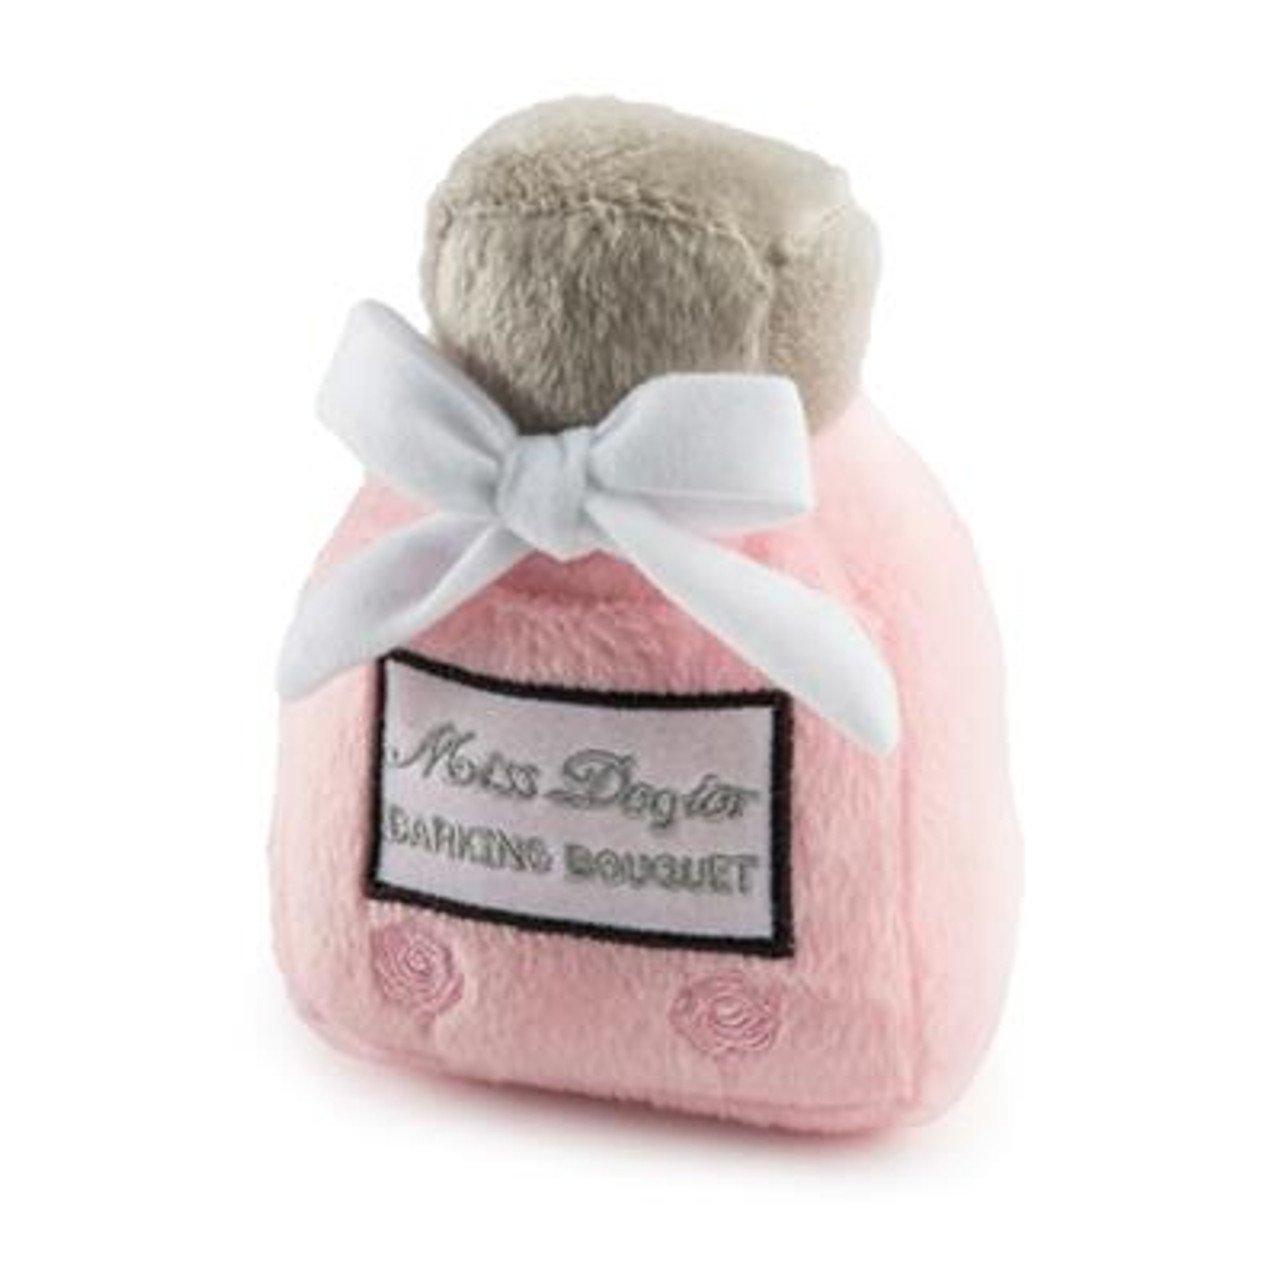 Miss Dogior Perfume Bottle Toy